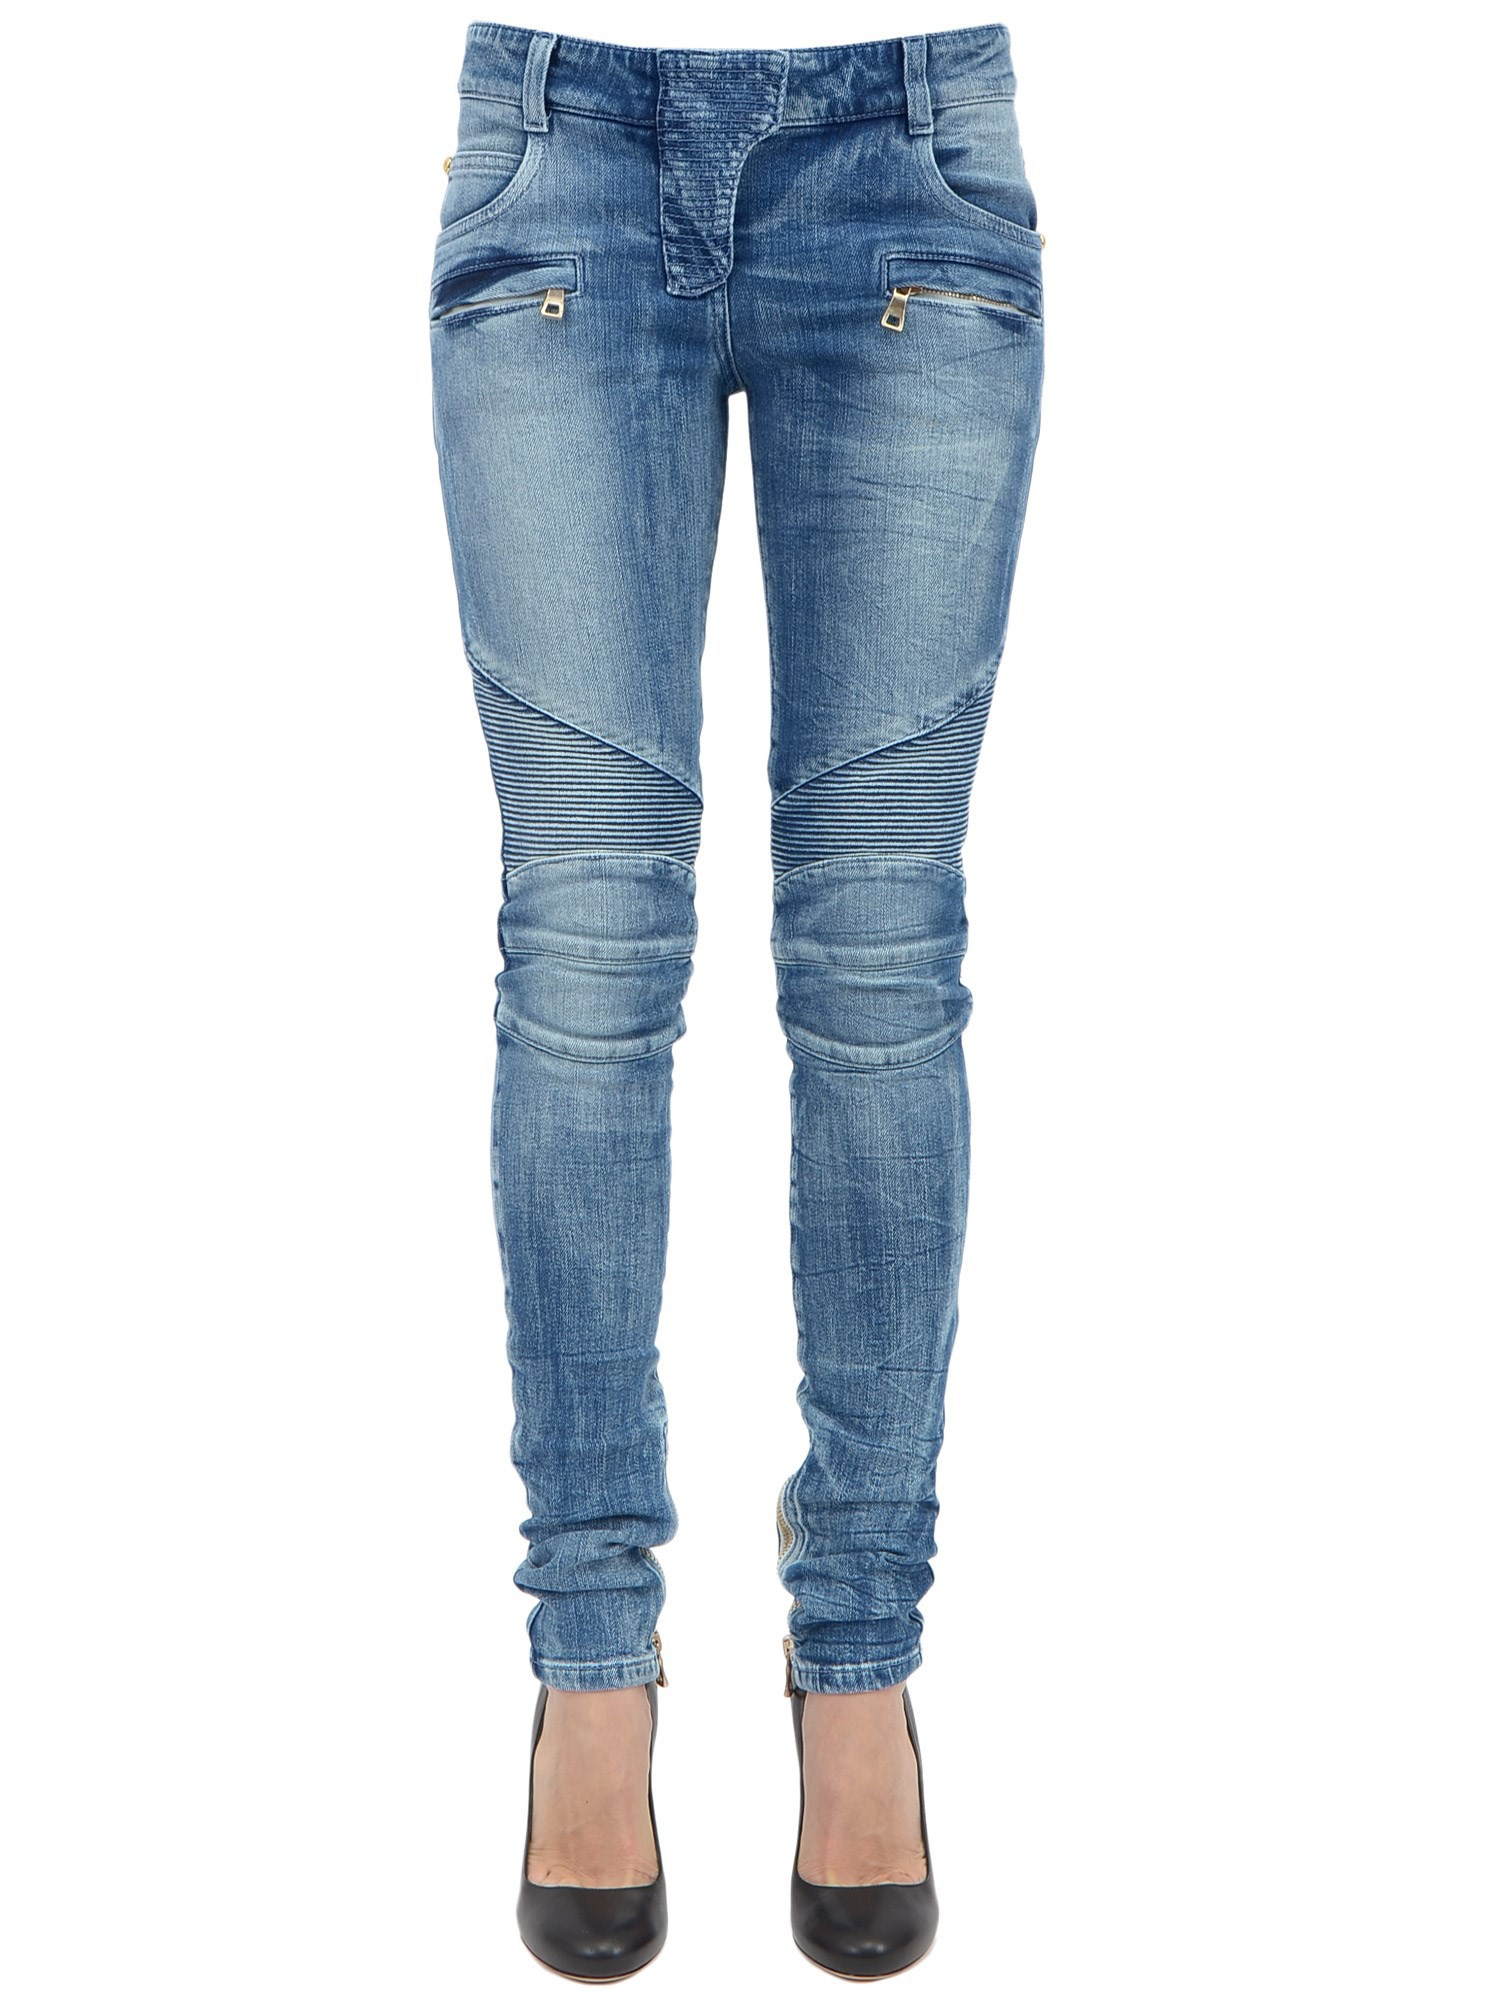 Light blue cotton biker jeans from Balmain featuring a concealed button fastening, a waistband with belt loops, front pockets, back pockets, ribbed details, a stonewashed effect, a .